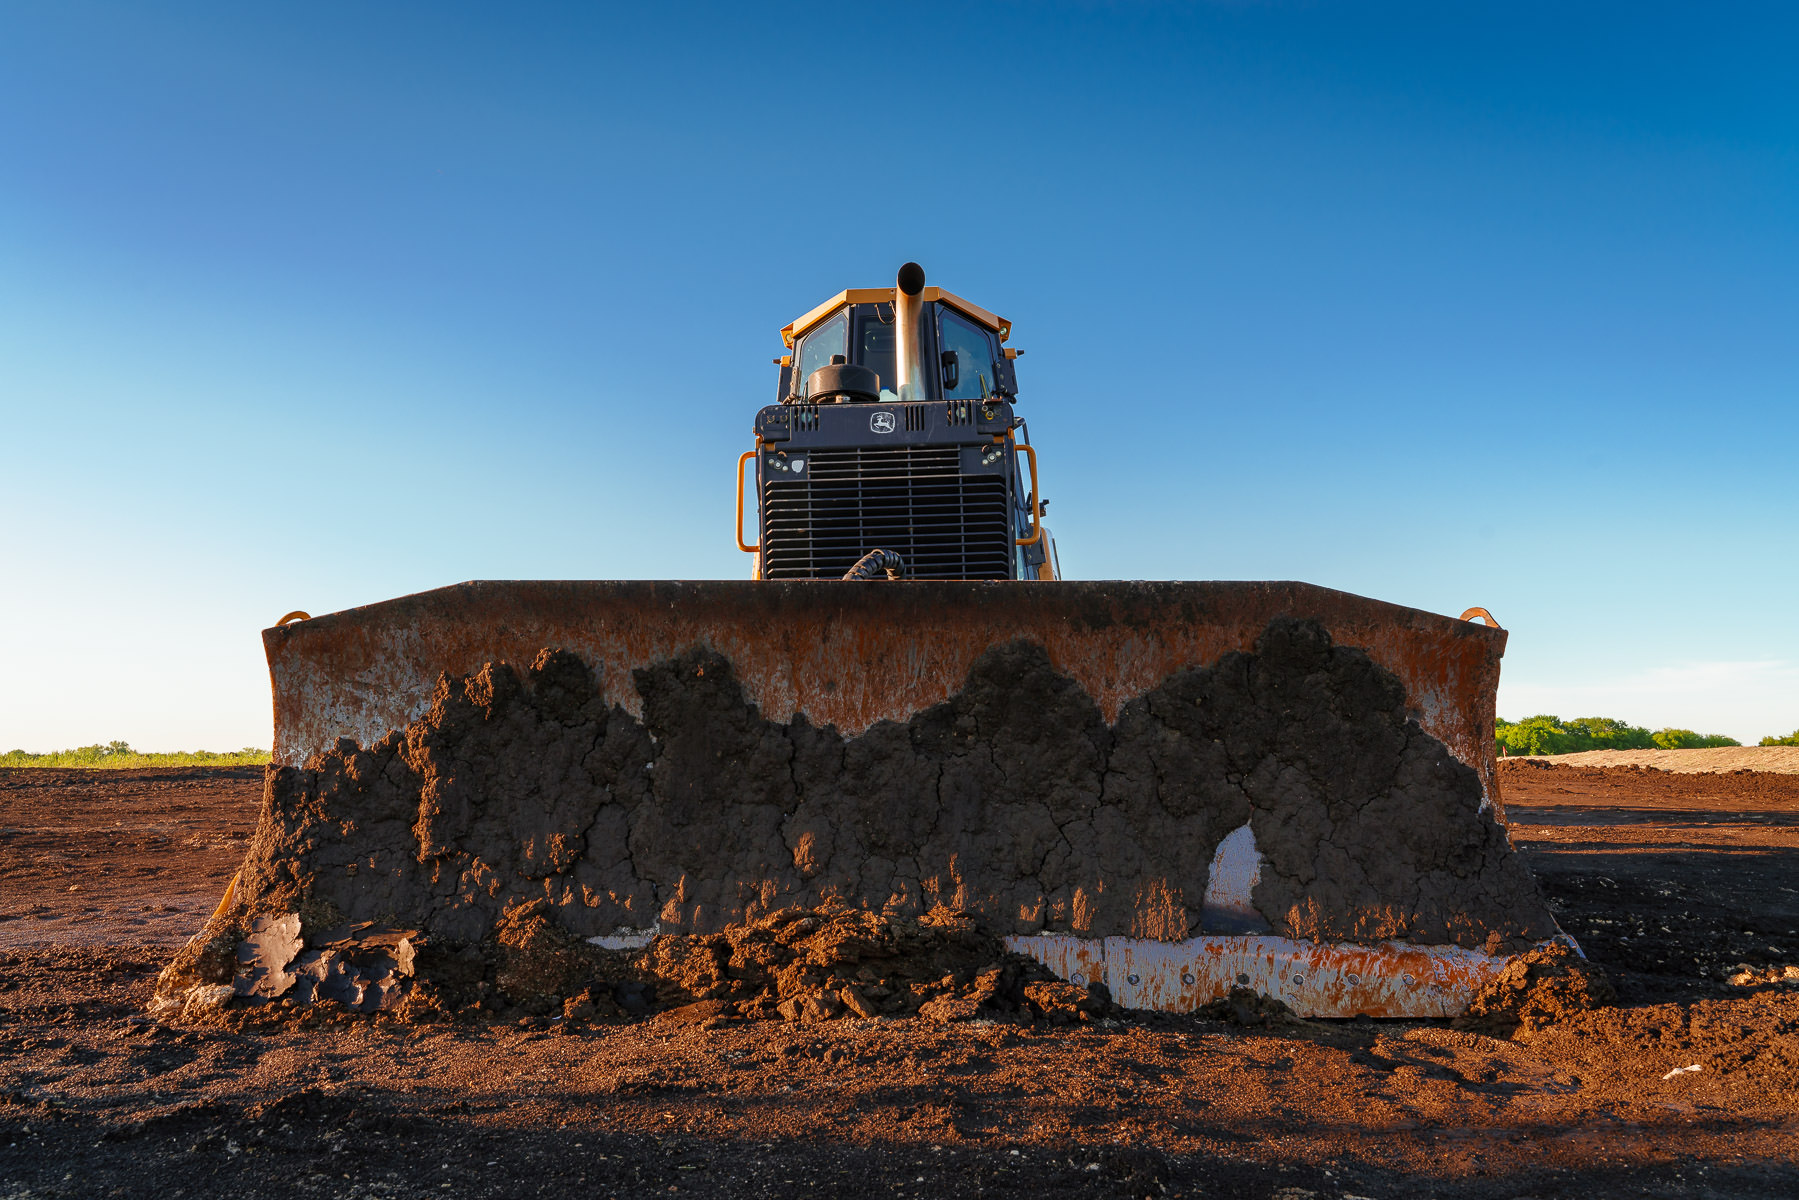 A bulldozer rests at a construction site near McKinney, Texas.